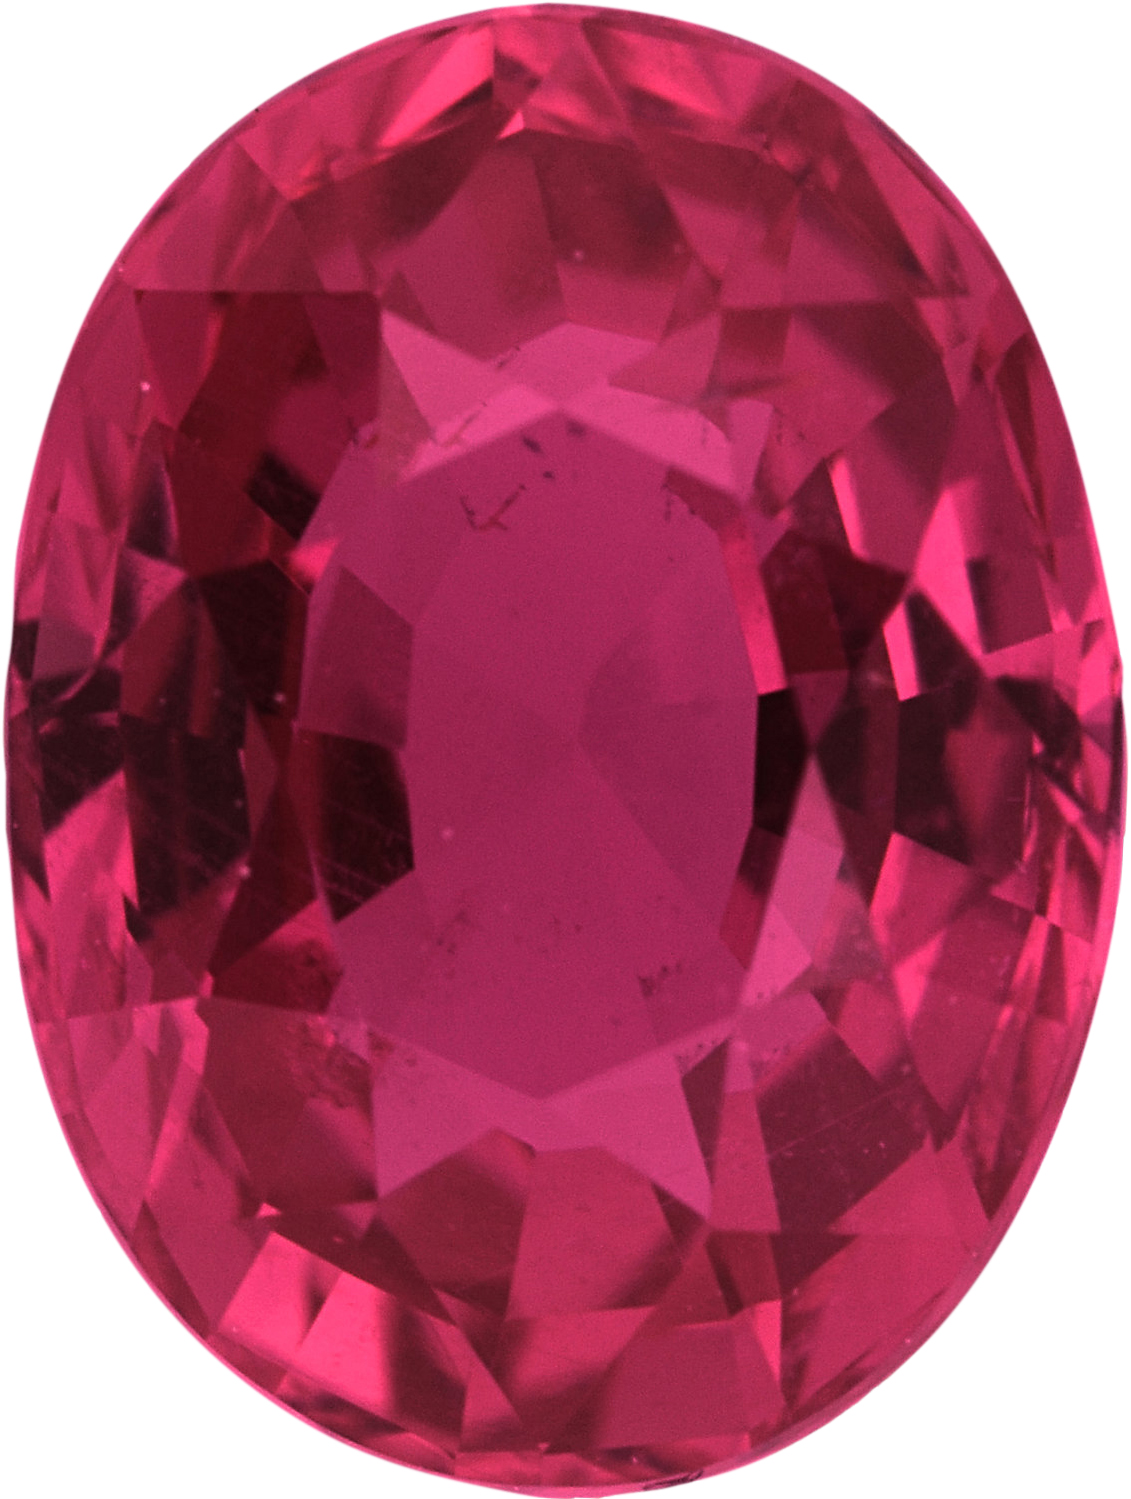 2.02 carats Pink Loose Sapphire Gemstone in Oval Cut, 8.23 x 6.2 mm